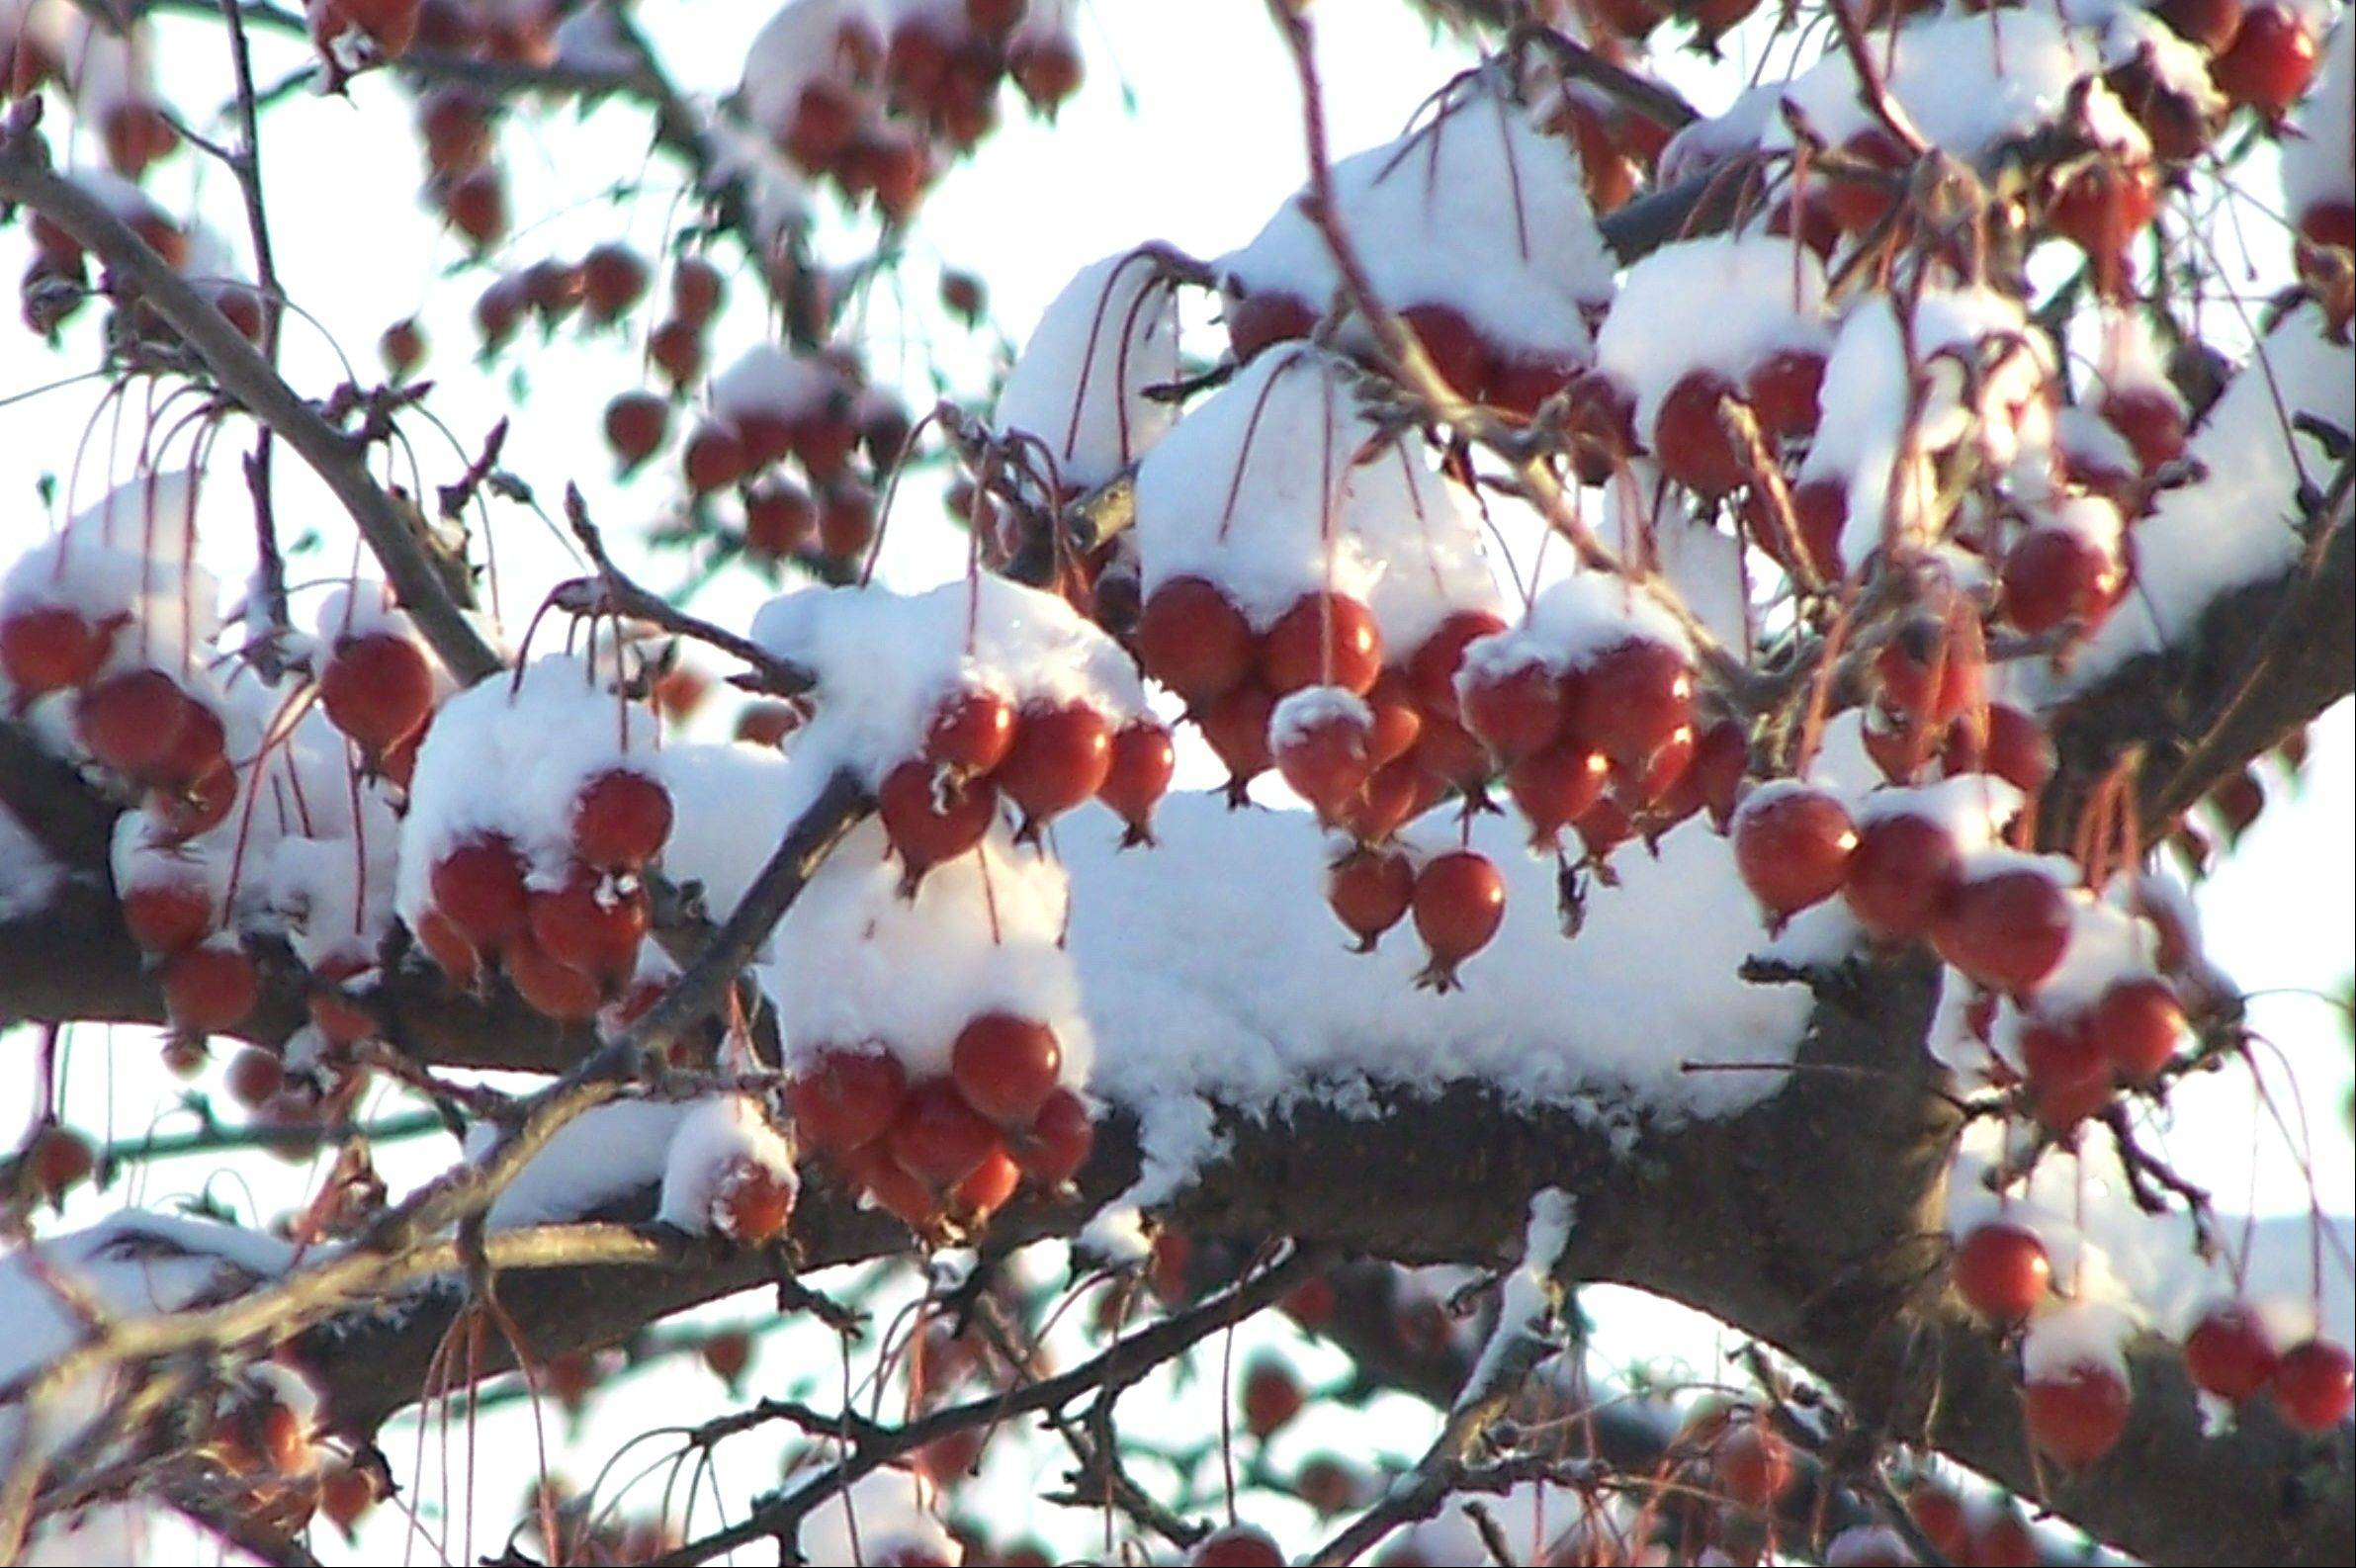 Crabapples are an important food source for birds in winter.